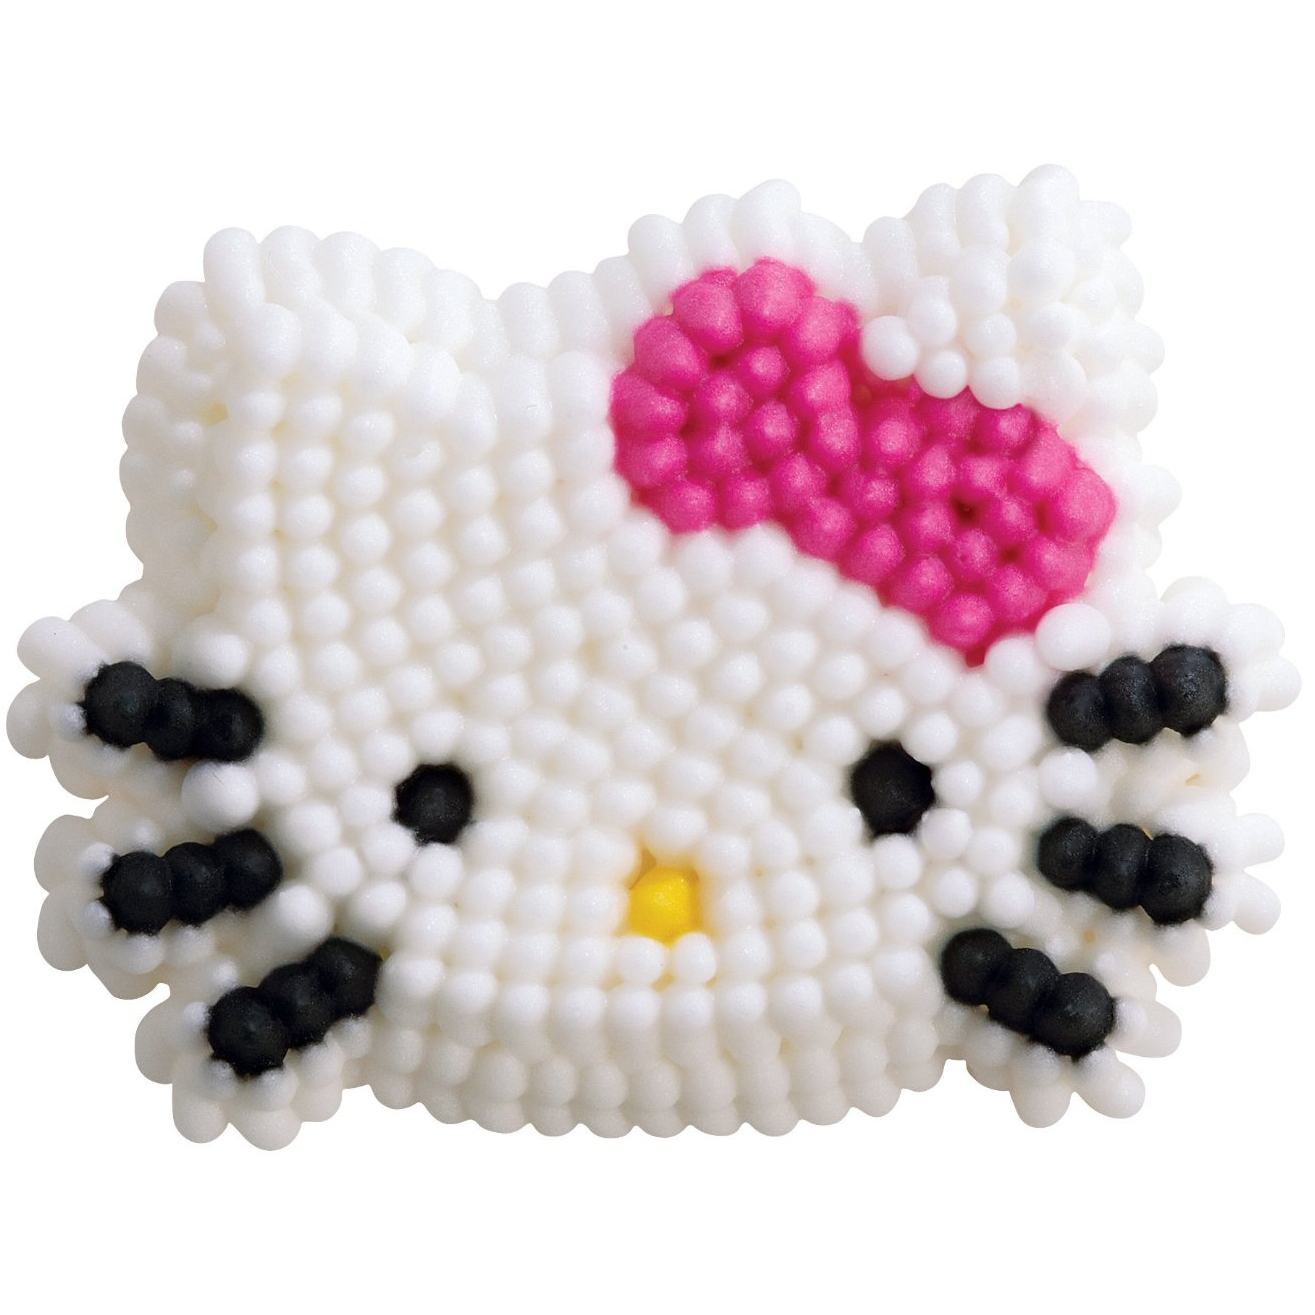 Wilton Hello Kitty Sugar Icing Decoration, Set of 12